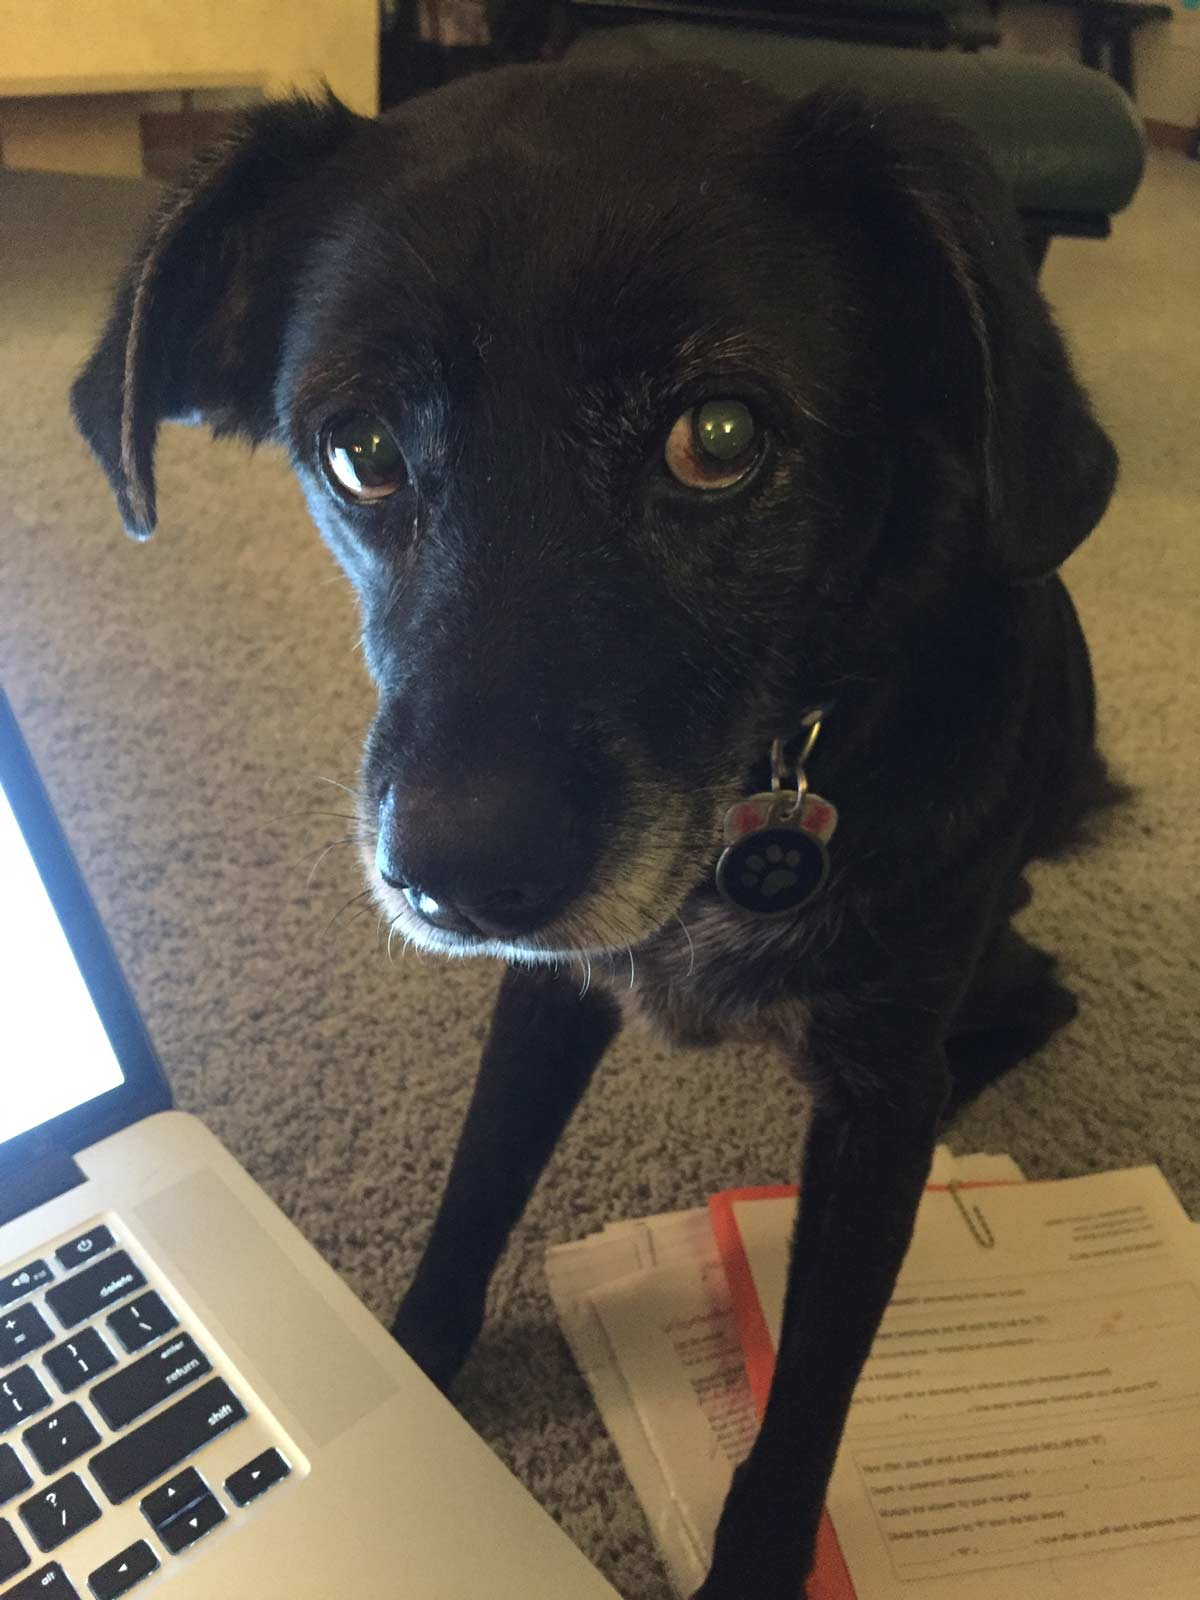 clara, a dark brown dog, helping with the laptop